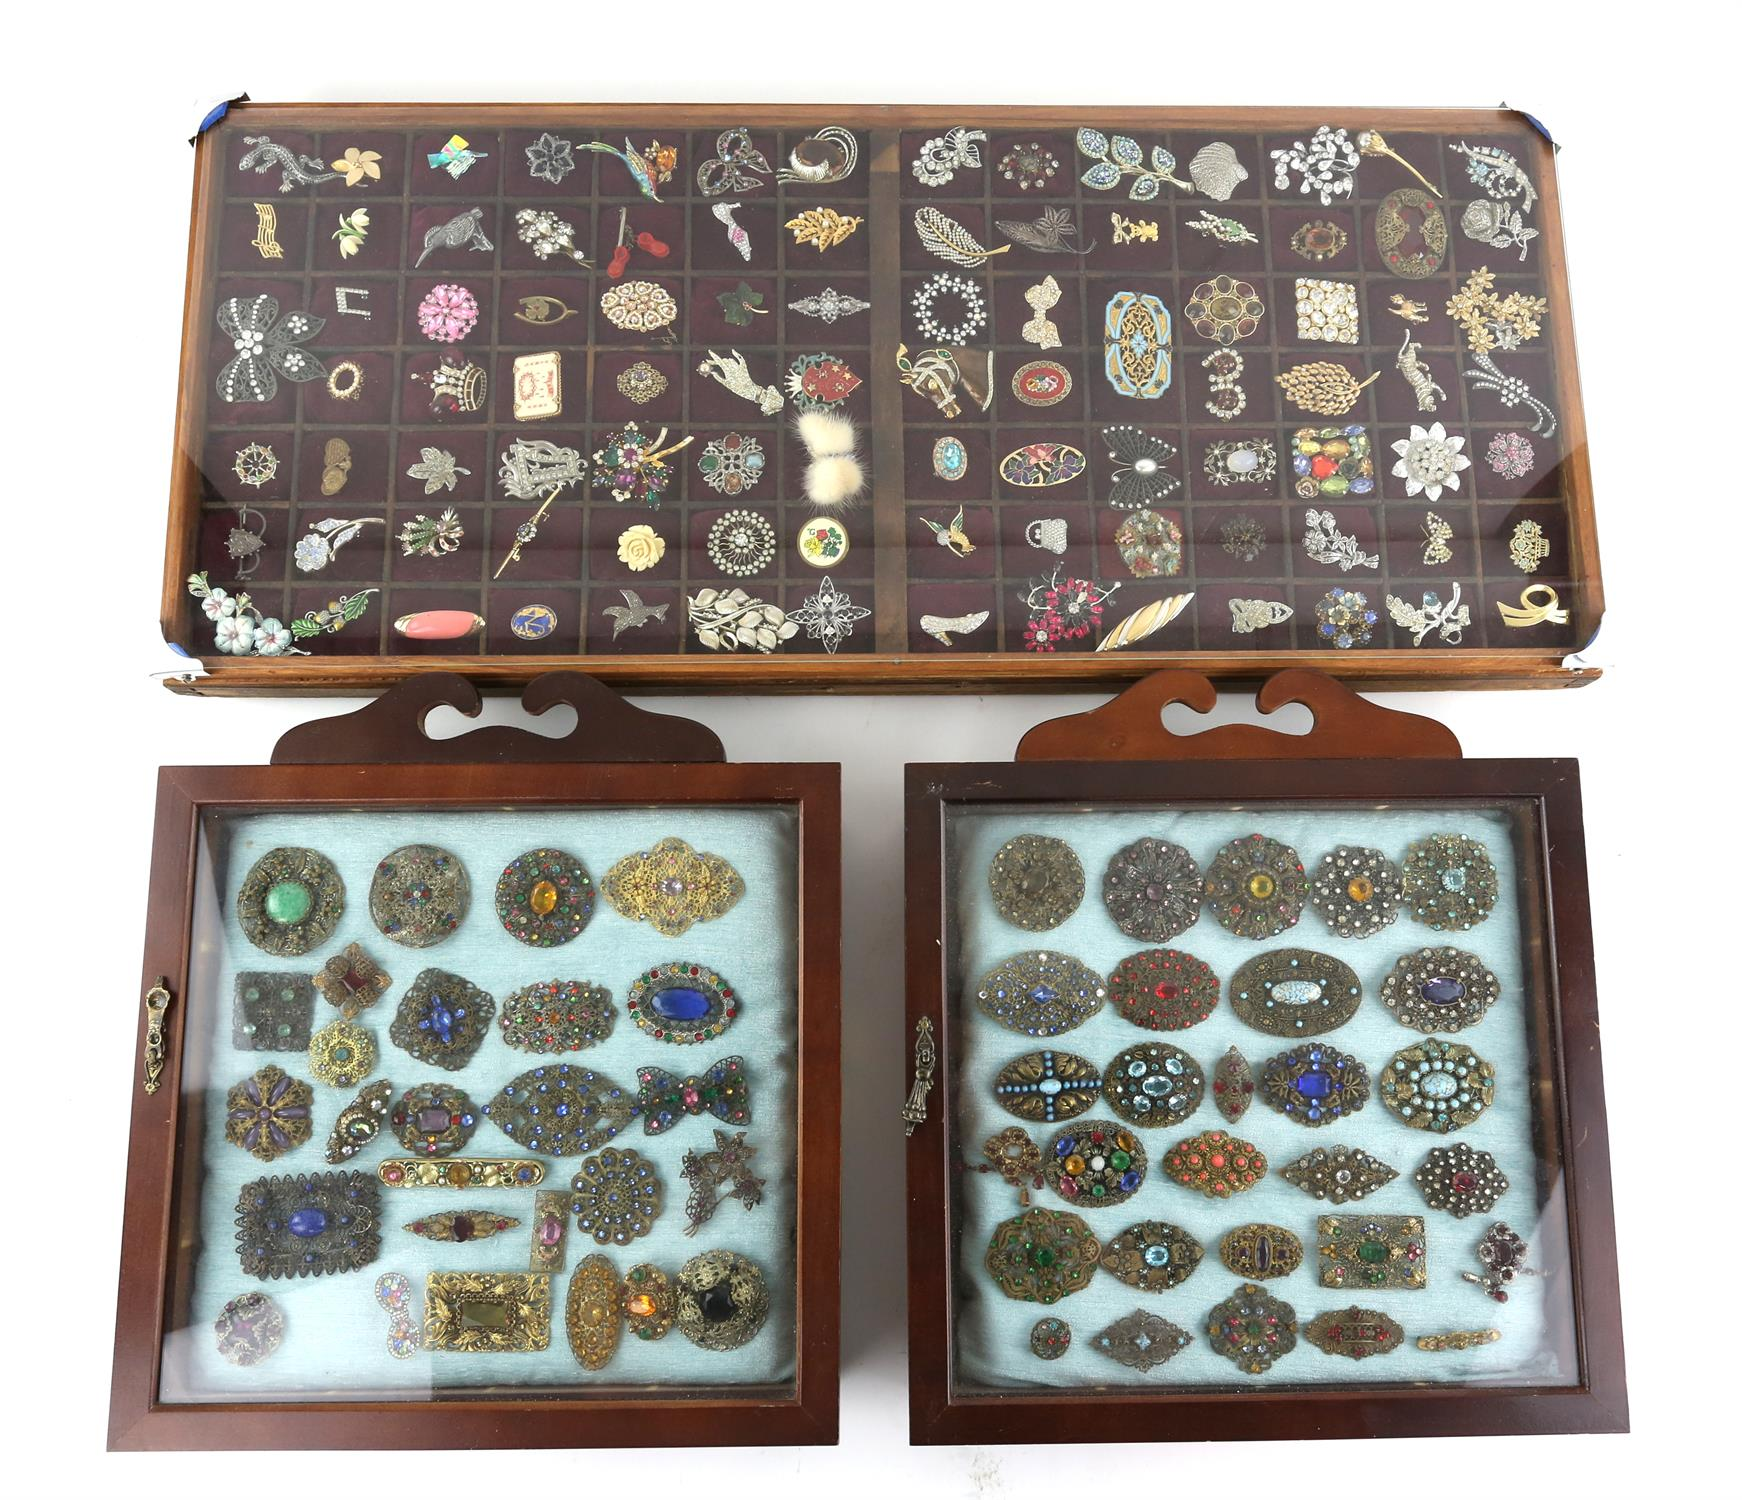 Three frames of brooches, largest frame measuring approximately 82 x 36.5cm, filled with colourful